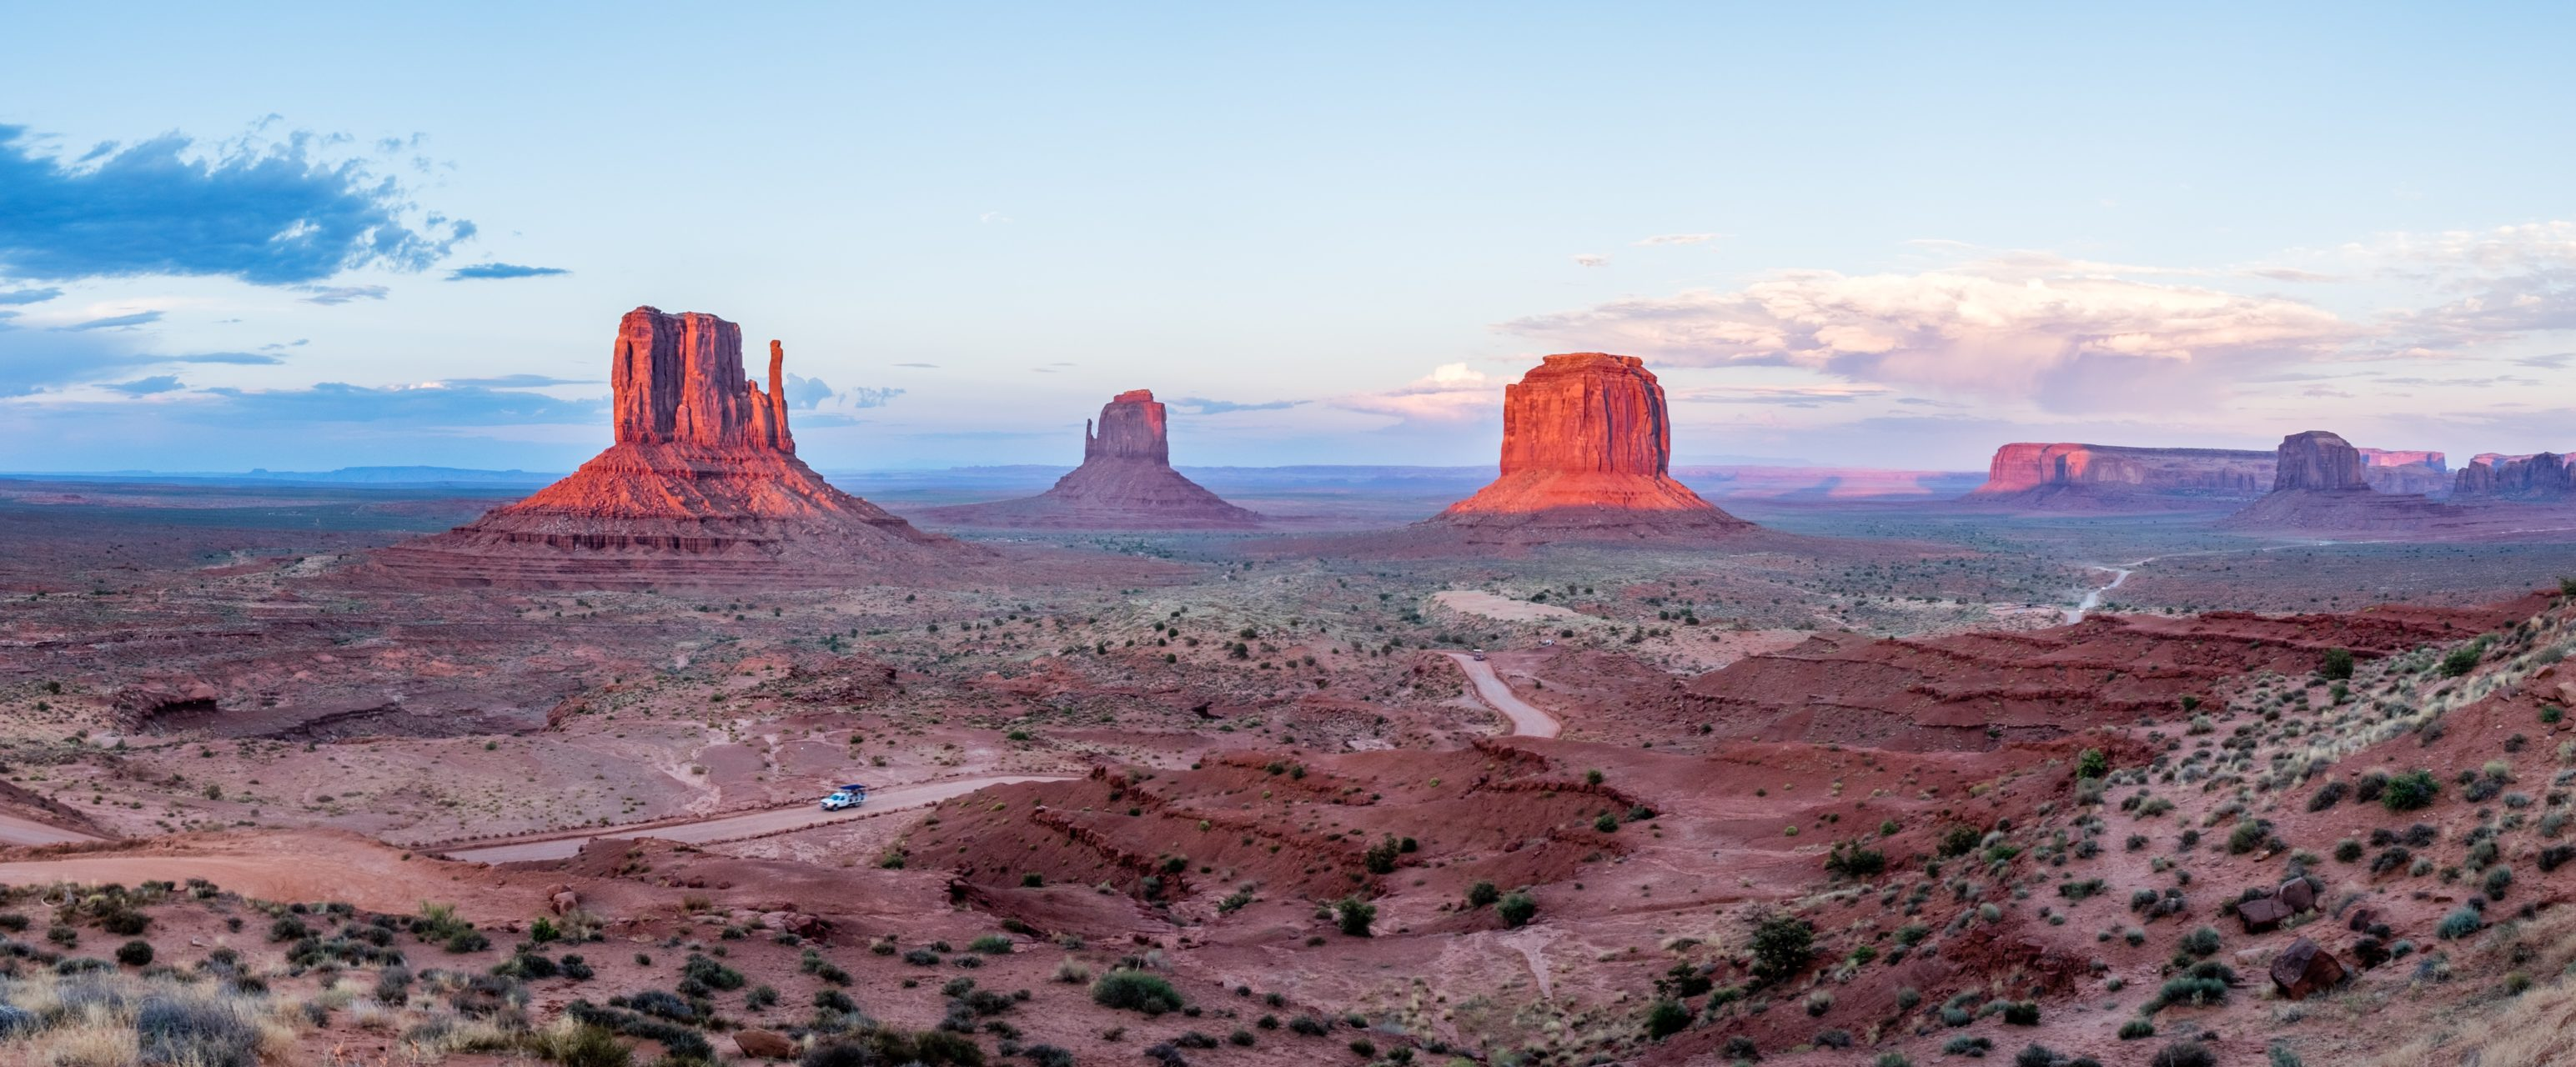 National Park in the U.S.